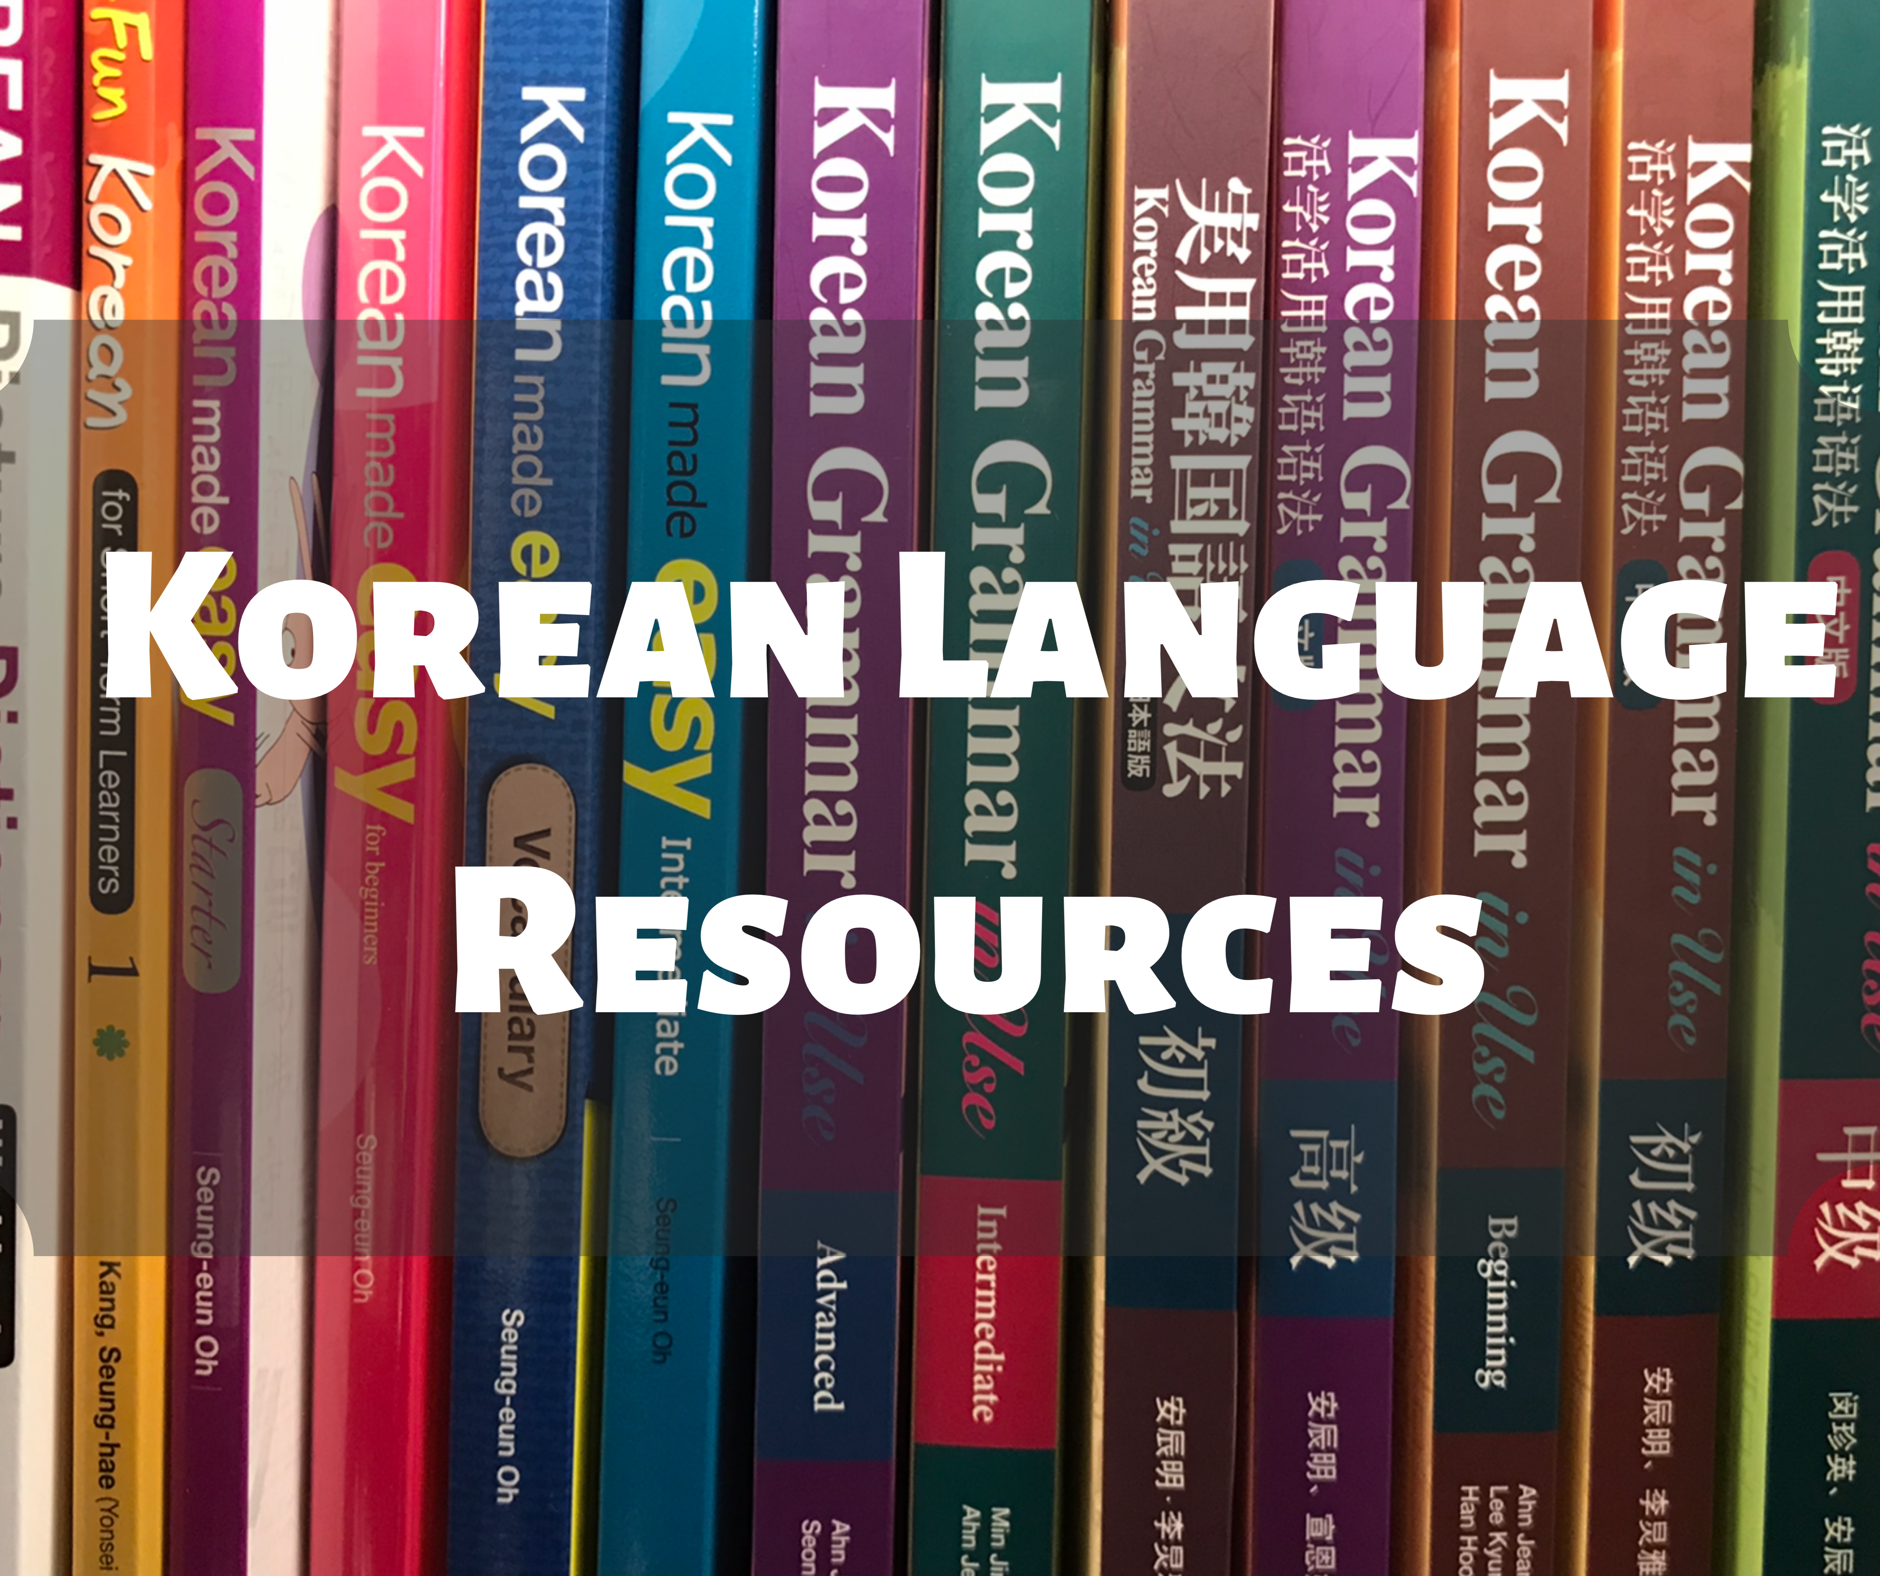 Korean Language Resources